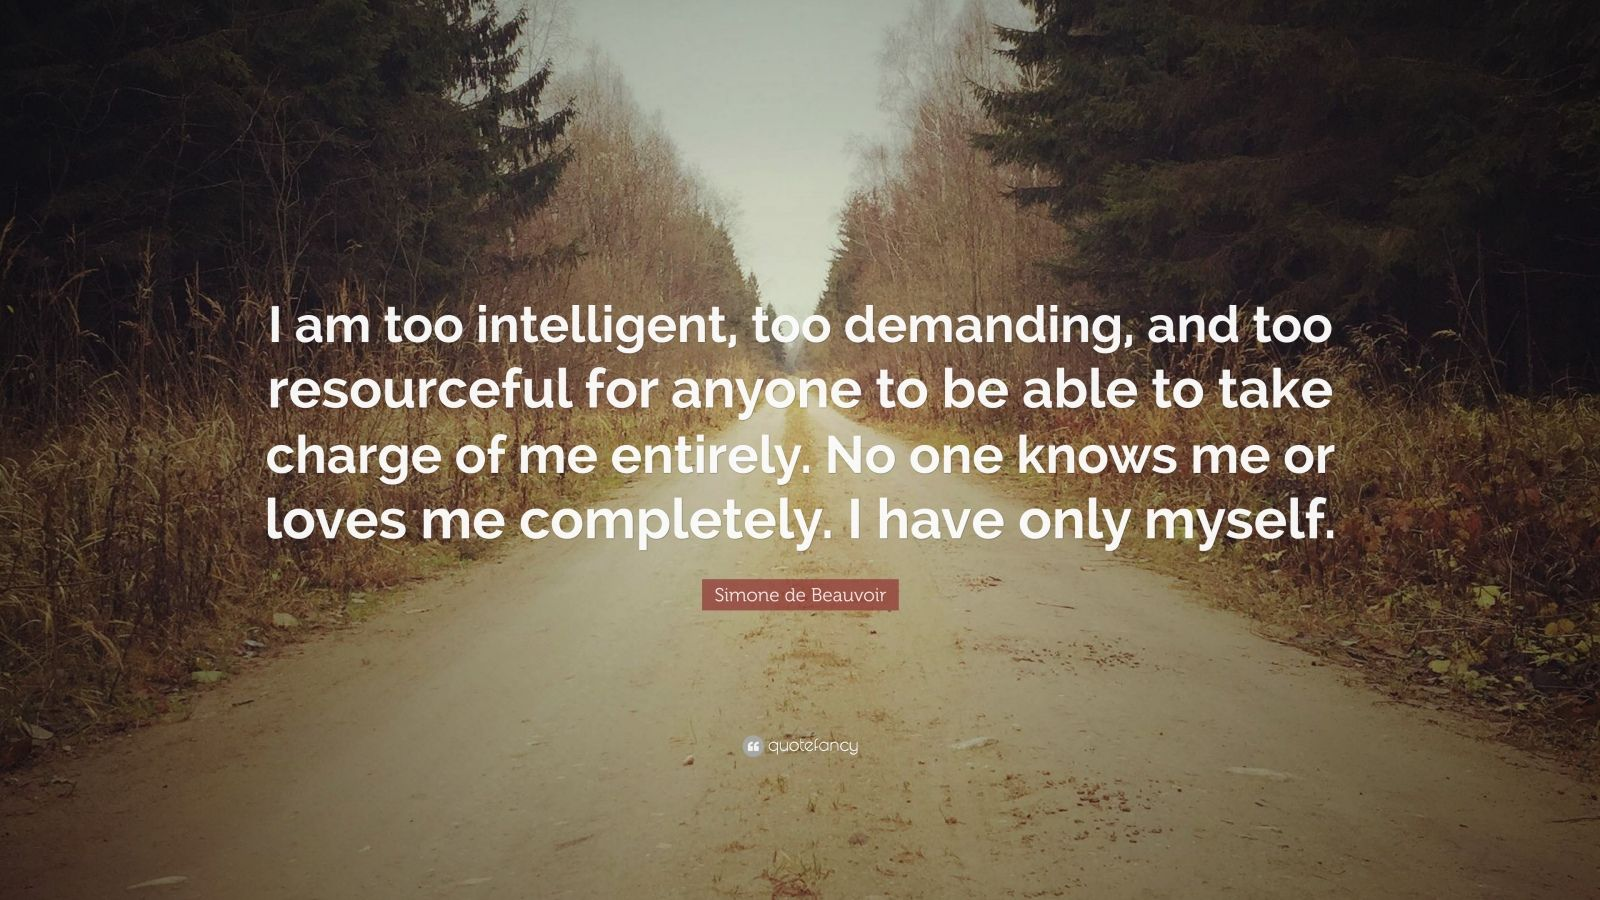 """Simone de Beauvoir Quote: """"I am too intelligent, too demanding, and too resourceful for anyone to be able to take charge of me entirely. No one knows me or loves me completely. I have only myself."""""""